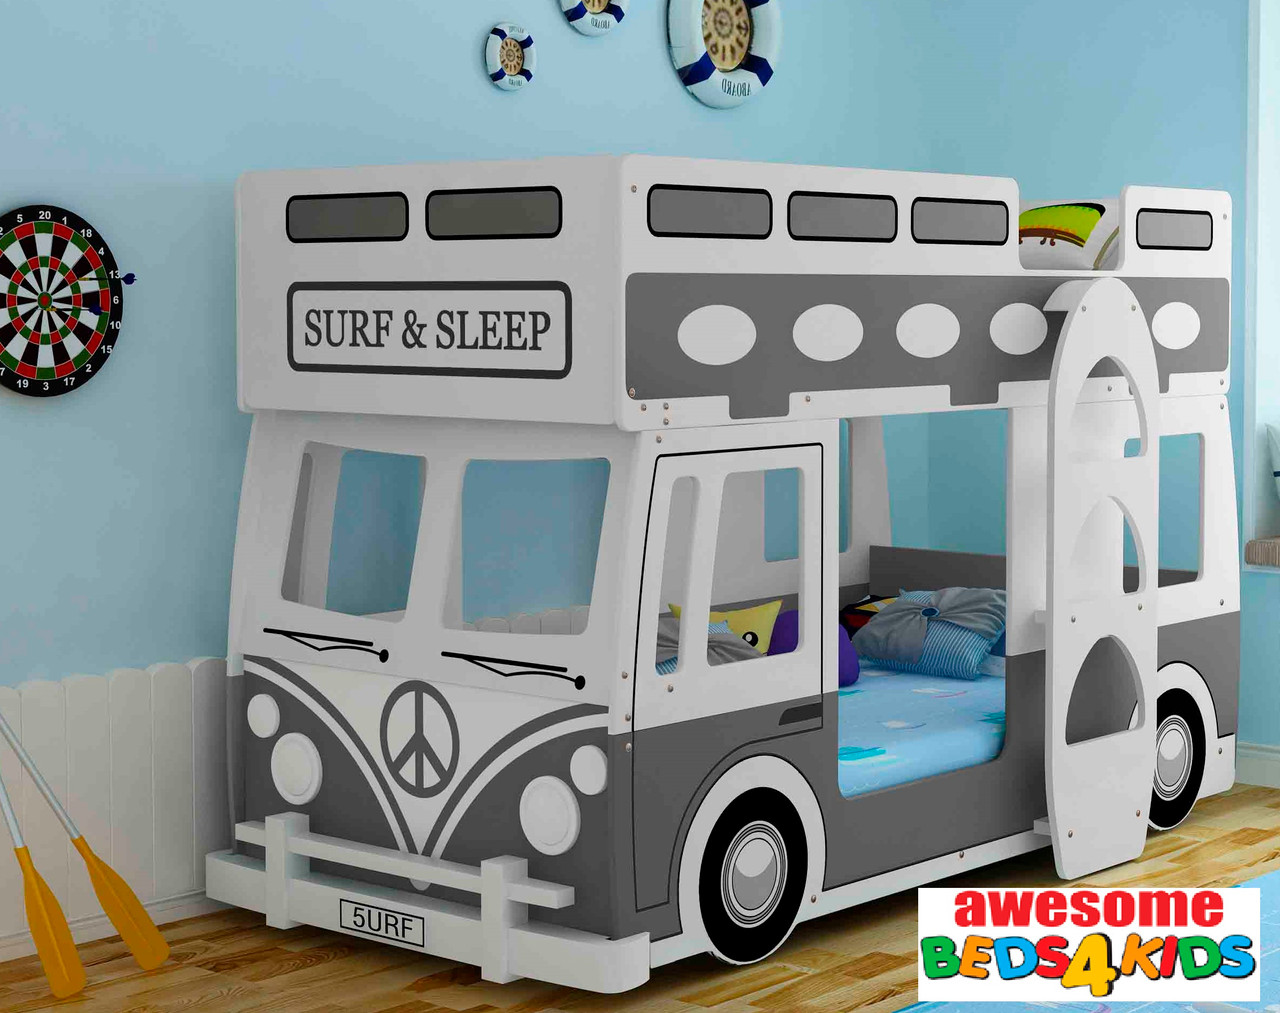 Surfs Up Dude! Surf Bus Bunk Bed Features a standard single size bunk bed which is close to the ground for little ones! Use the top for storage if needed and bottom bunk to sleep! Very Cool!